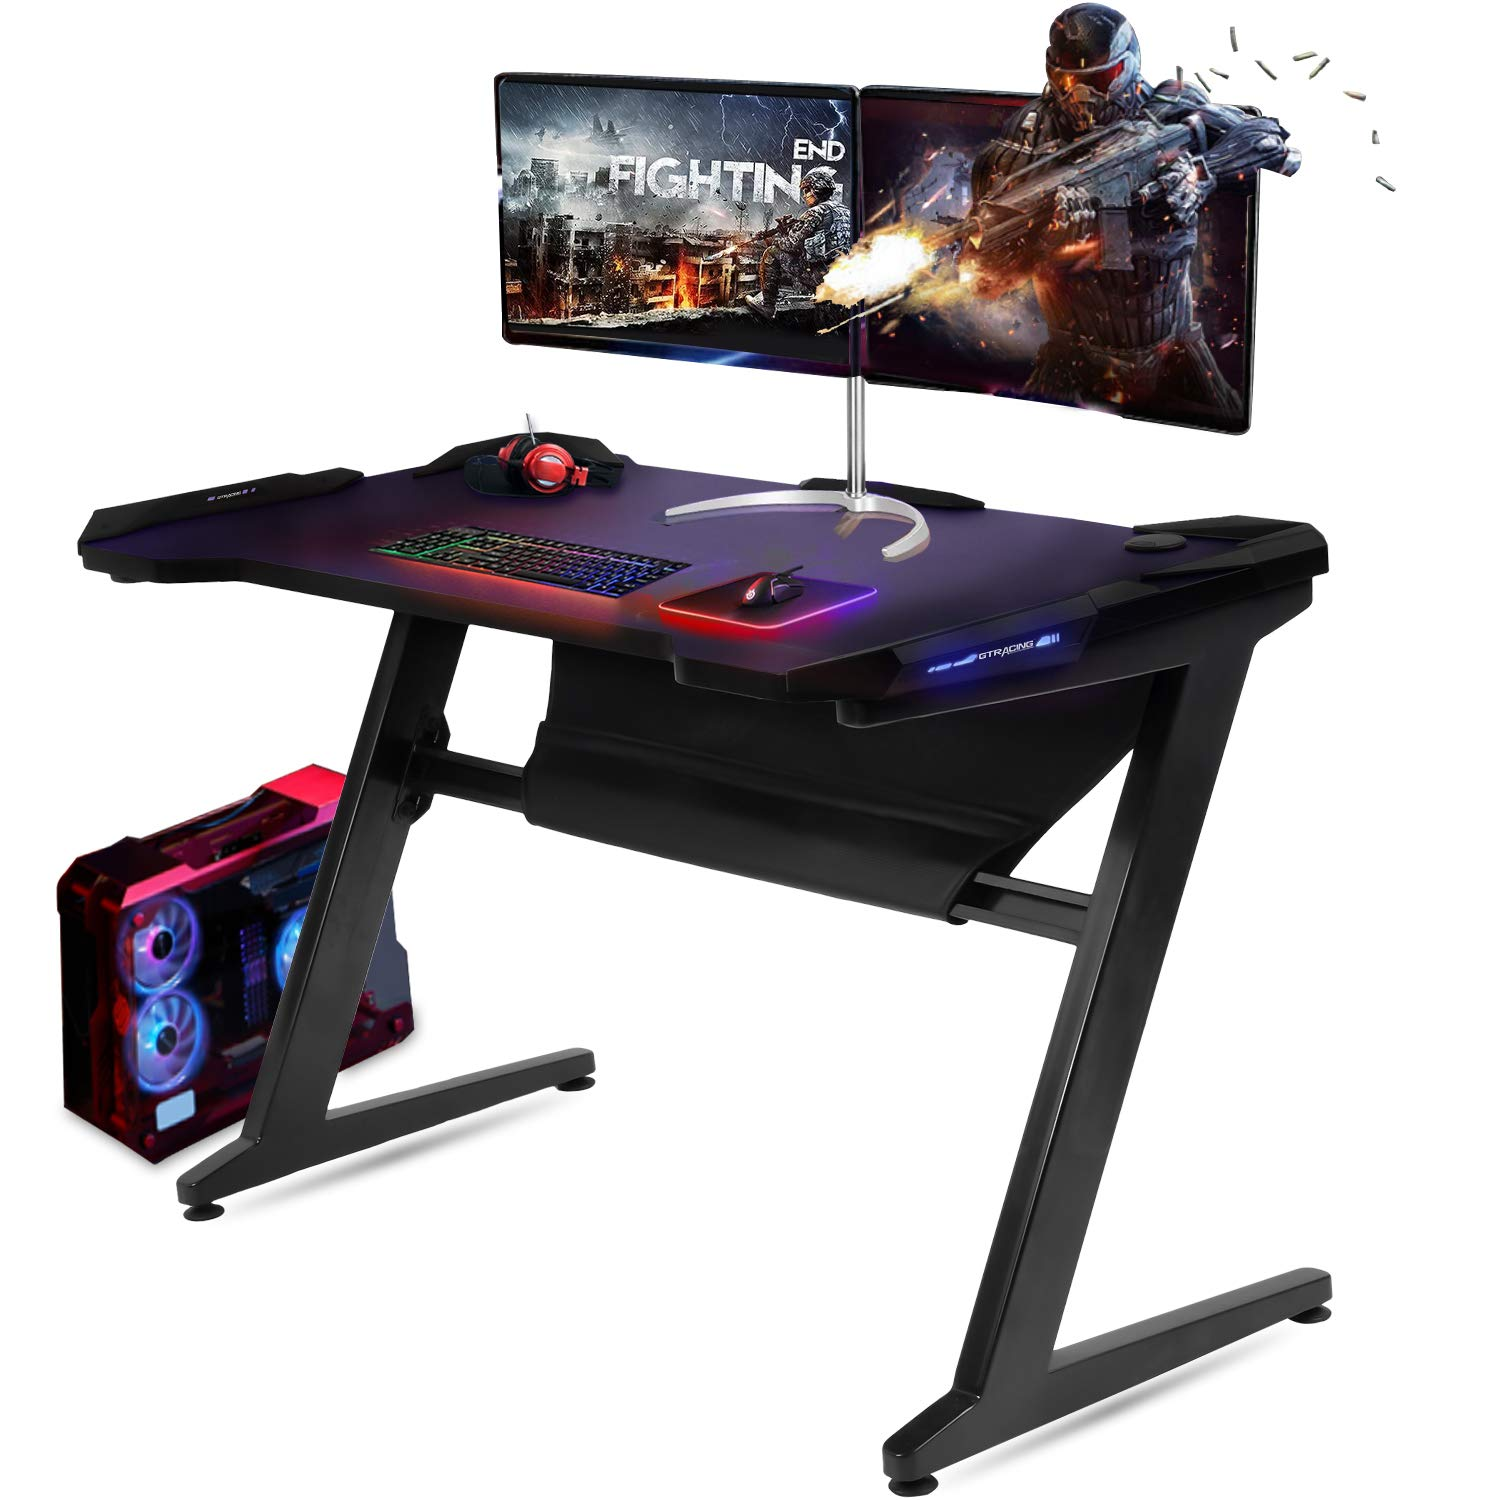 size 40 c5cdd 0c0b0 GTRACING Gaming Desk Racing Computer Table with LED Light PC Stand  Ergonomic Durable Z-Shaped E-Sports Desk Home Office Workstation GTZ01 Black